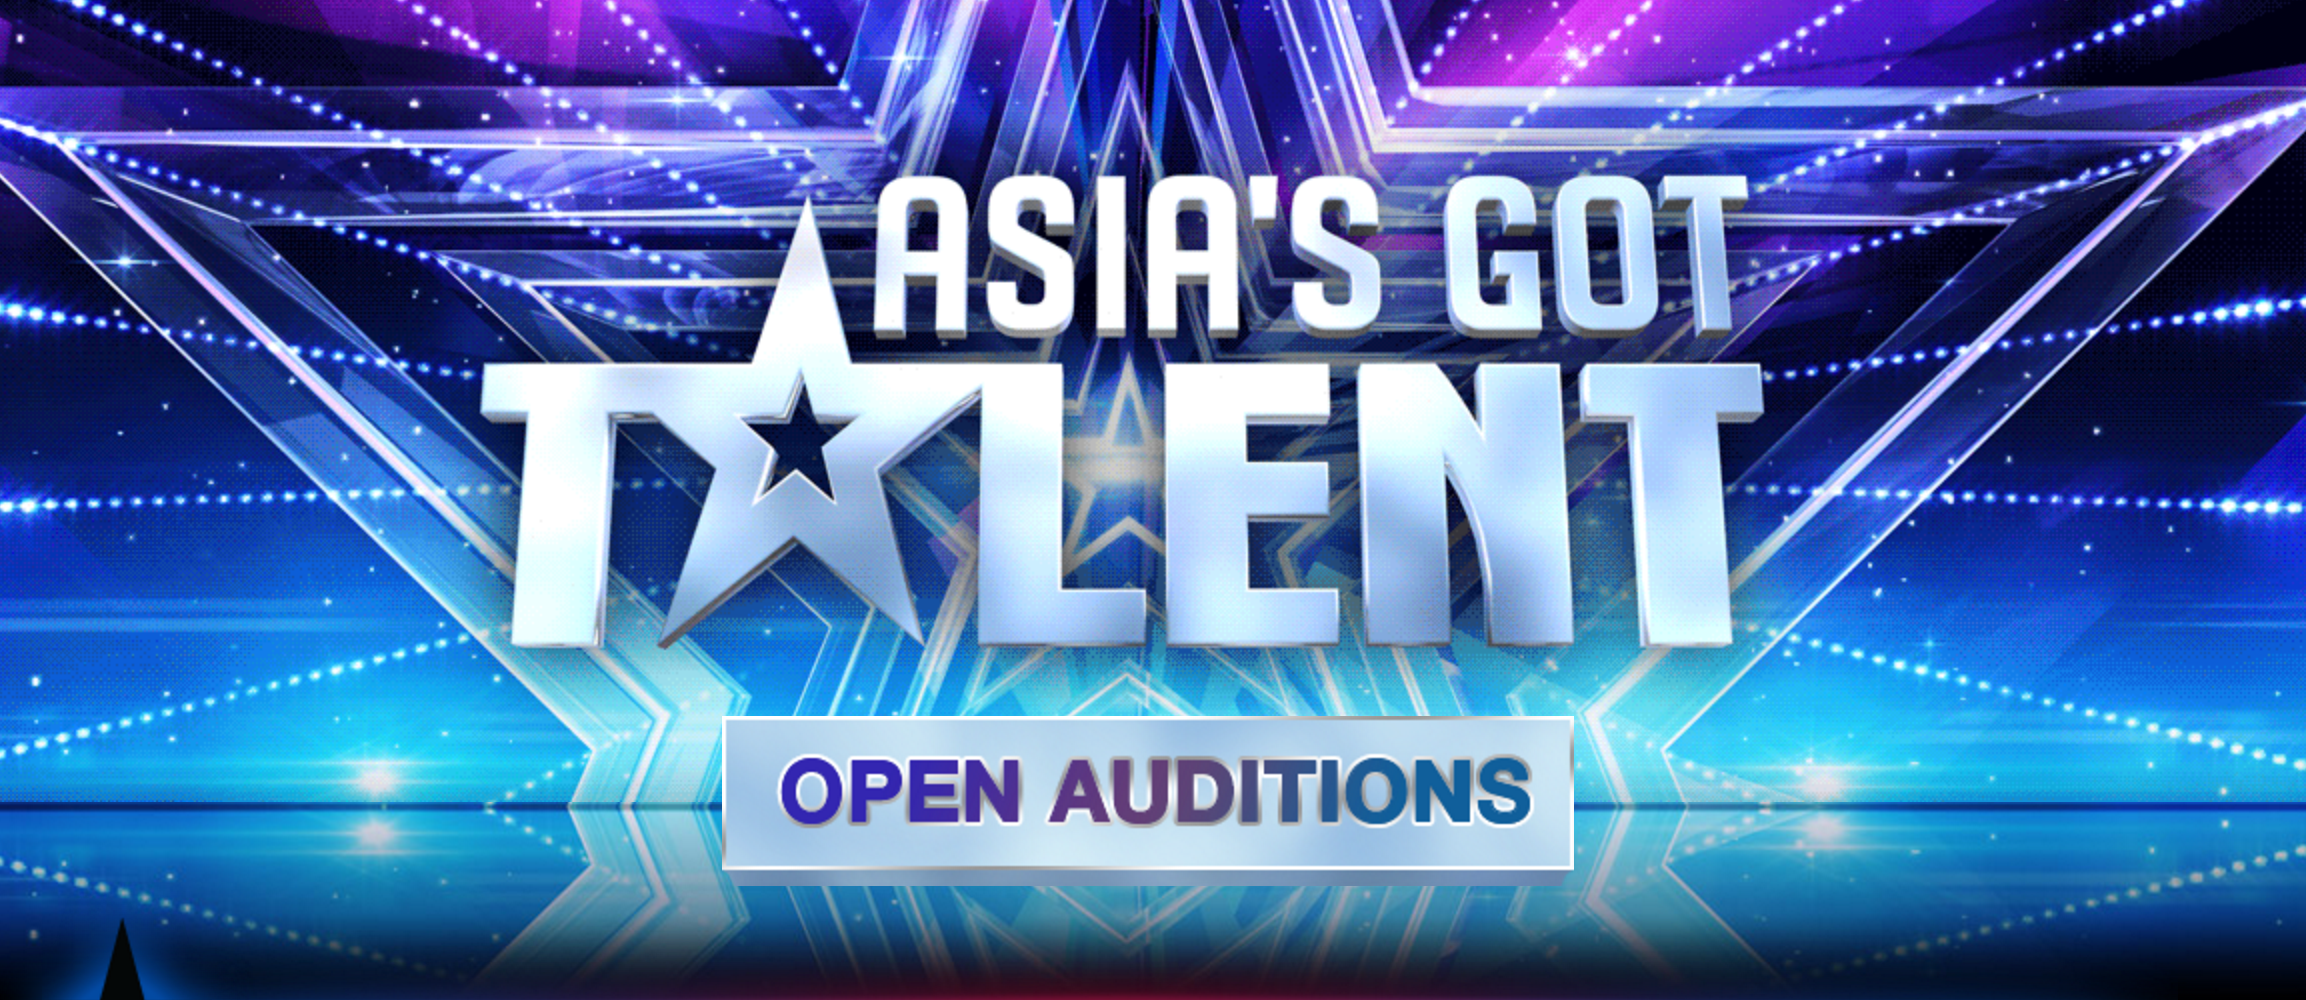 AXN Announces Open Auditions for Asia's Got Talent